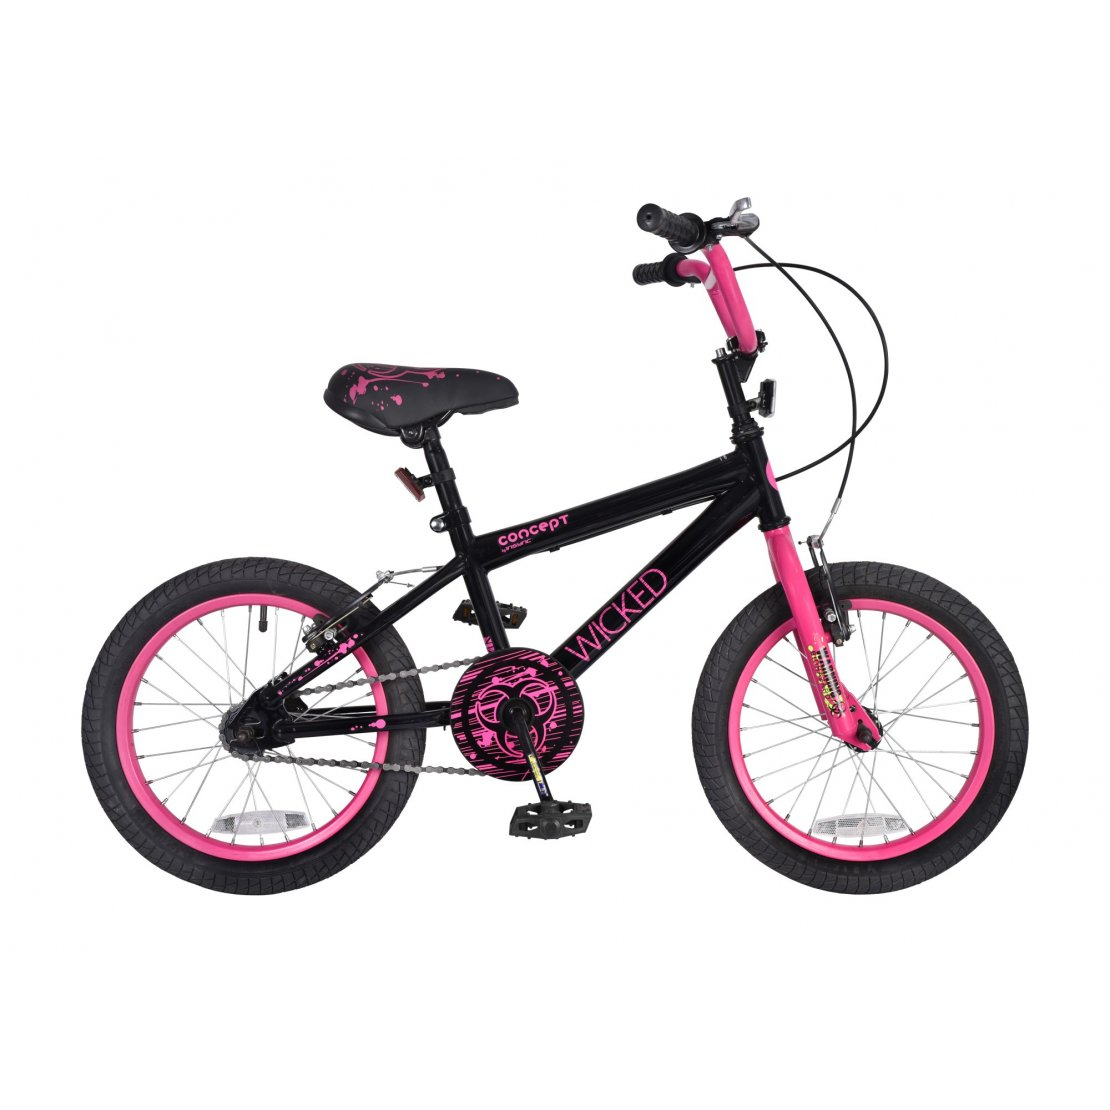 "Concept Wicked 16"" Wheel Girls Bicycle"